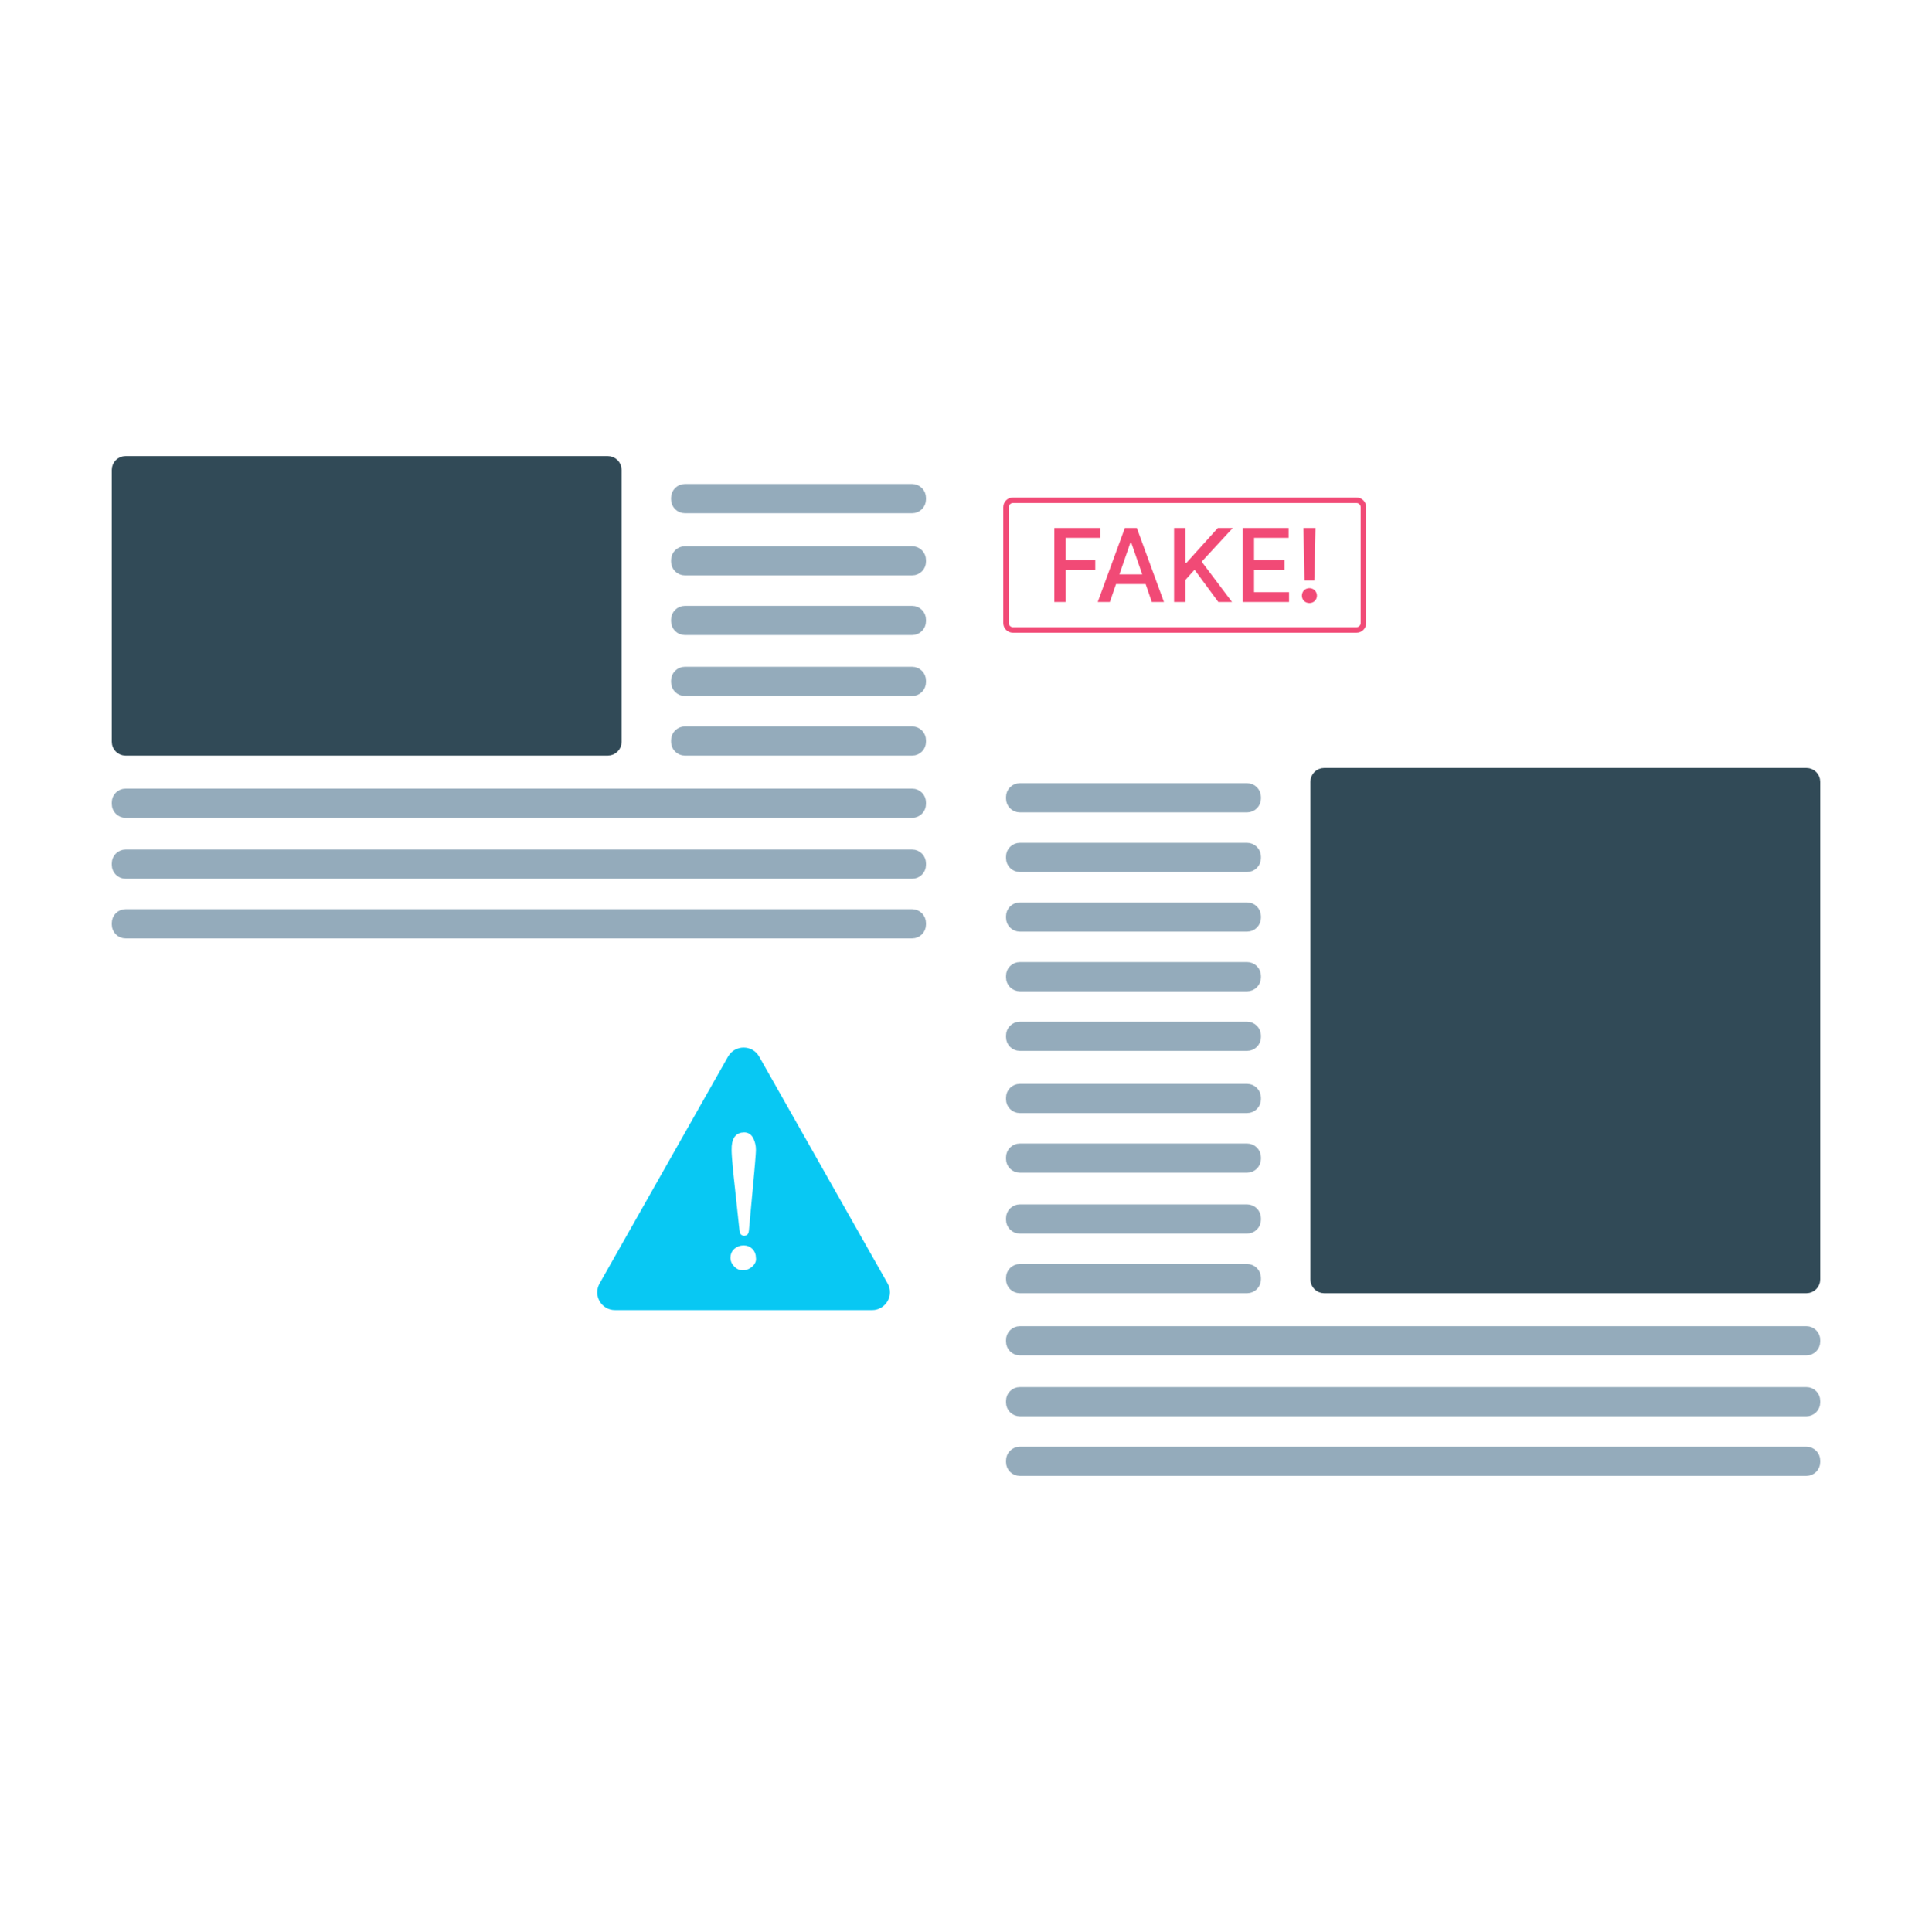 Fake news, scammers, and filter bubbles - Another phenomenon that Facebook has been at the core of is the spread of fake news, propaganda, malicious viral content, and the formation of steep filter bubbles formed around confirmation bias because of bad algorithms.